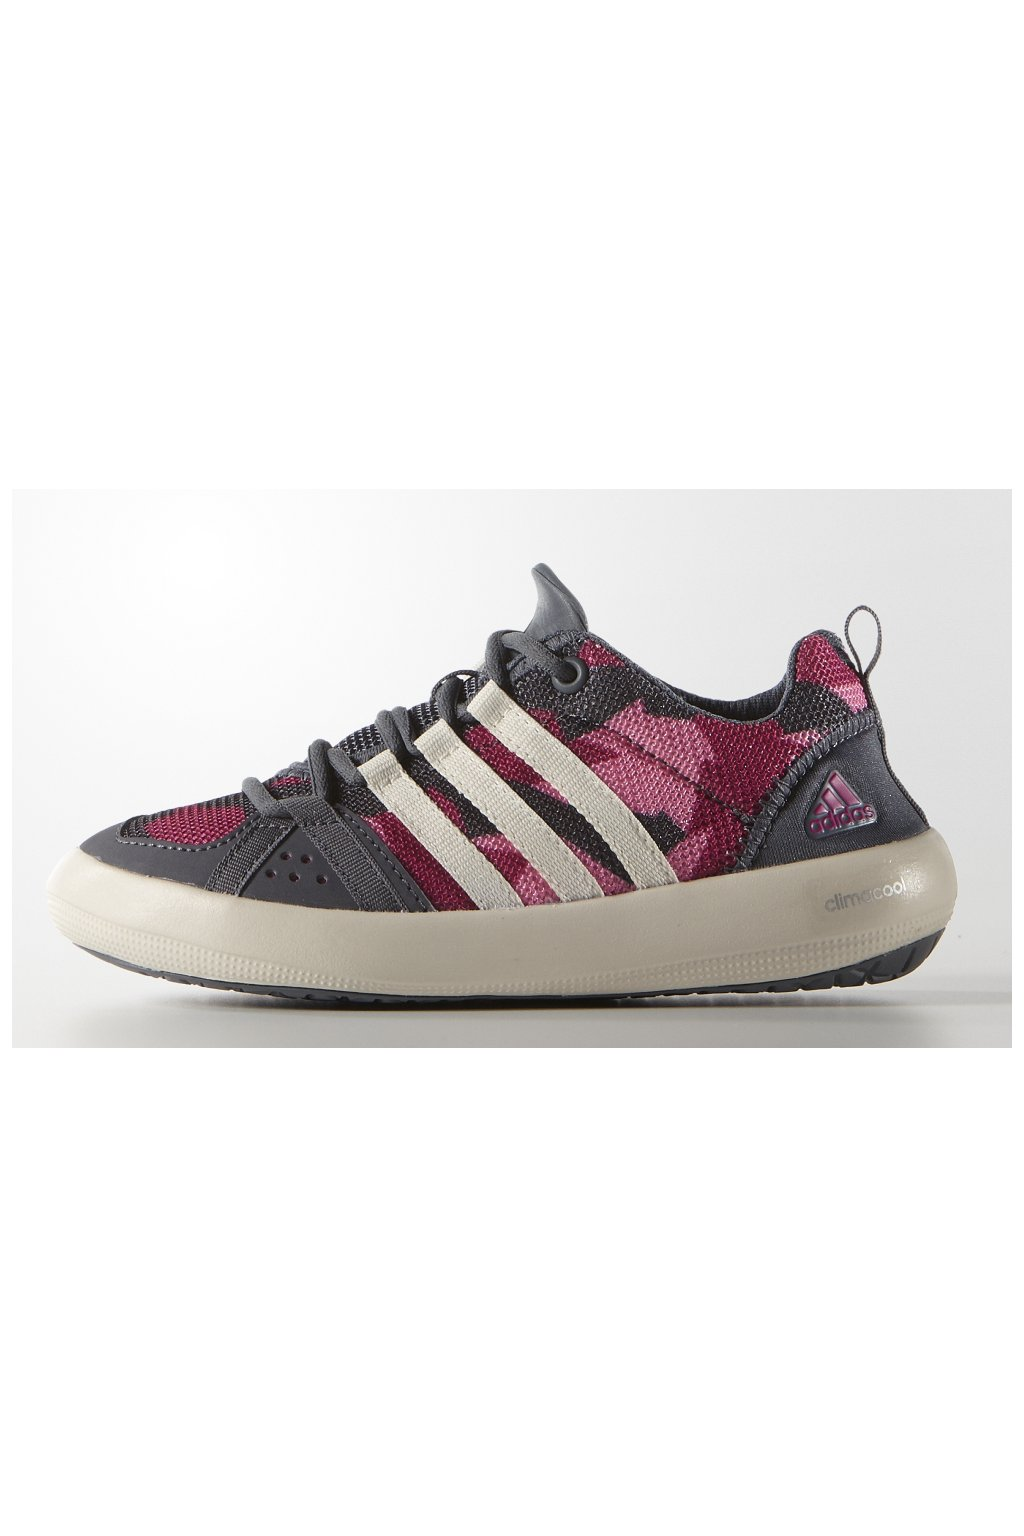 adidas CLIMACOOL BOAT LACE K S32046